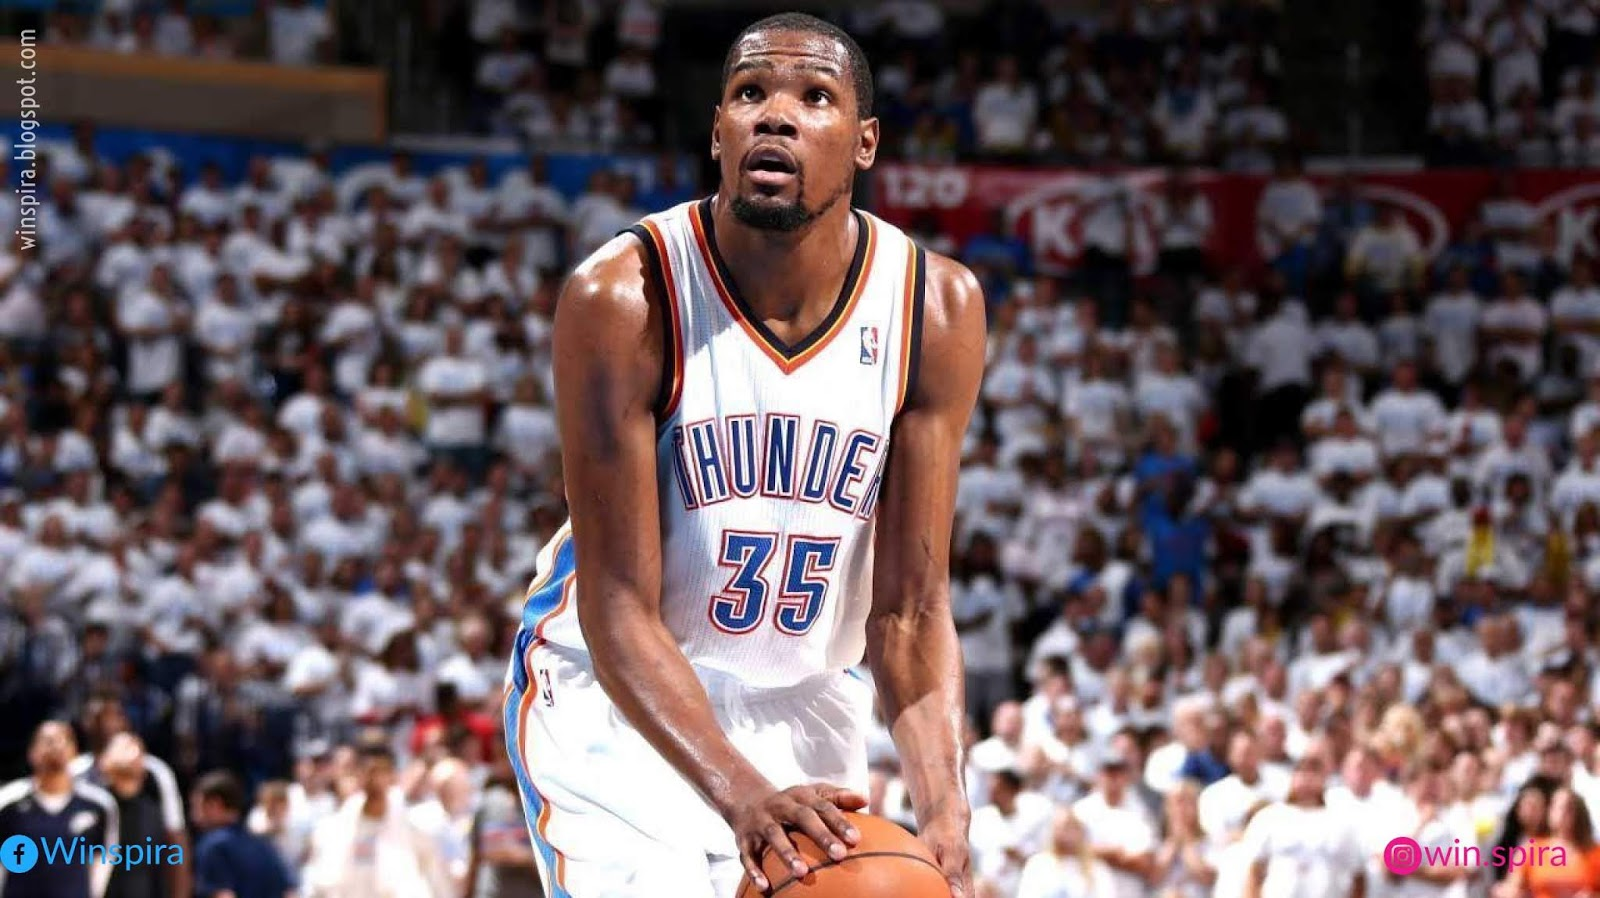 a76824ad3060 20 Inspirational Kevin Durant s Quotes - Winspira